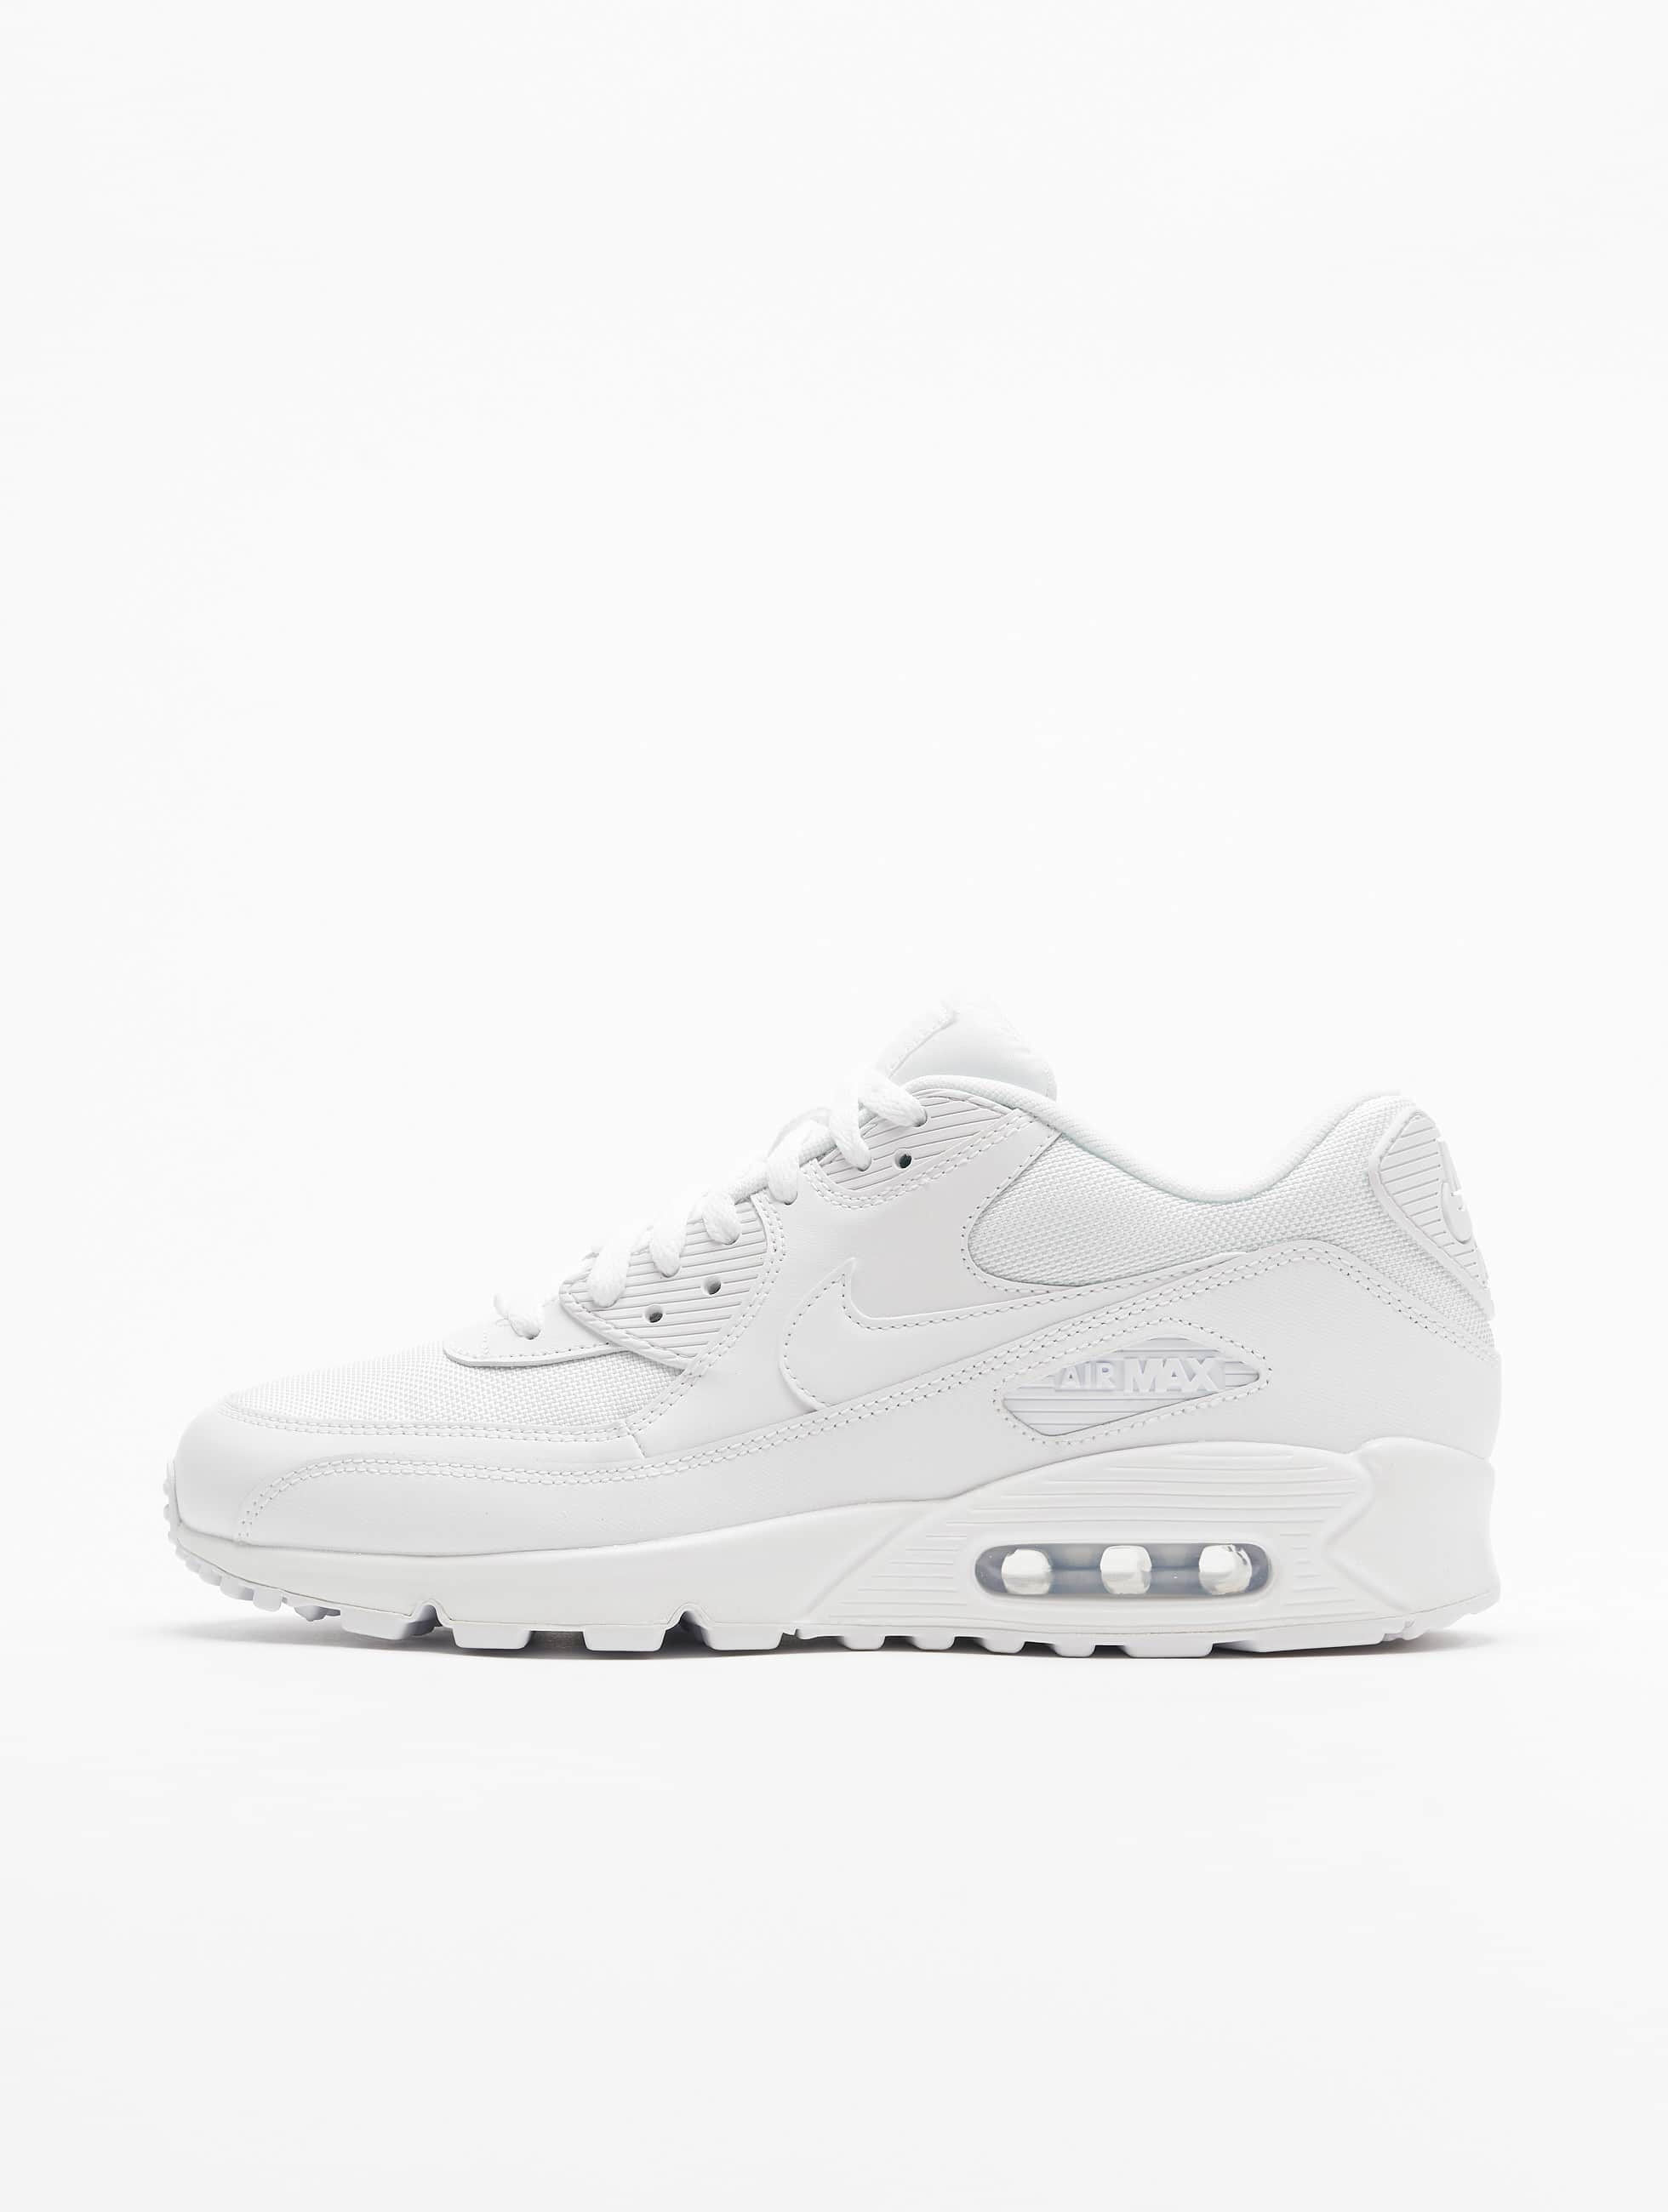 21df1a001c8c5 Nike | Air Max 90 Essential blanc Homme Baskets 118688